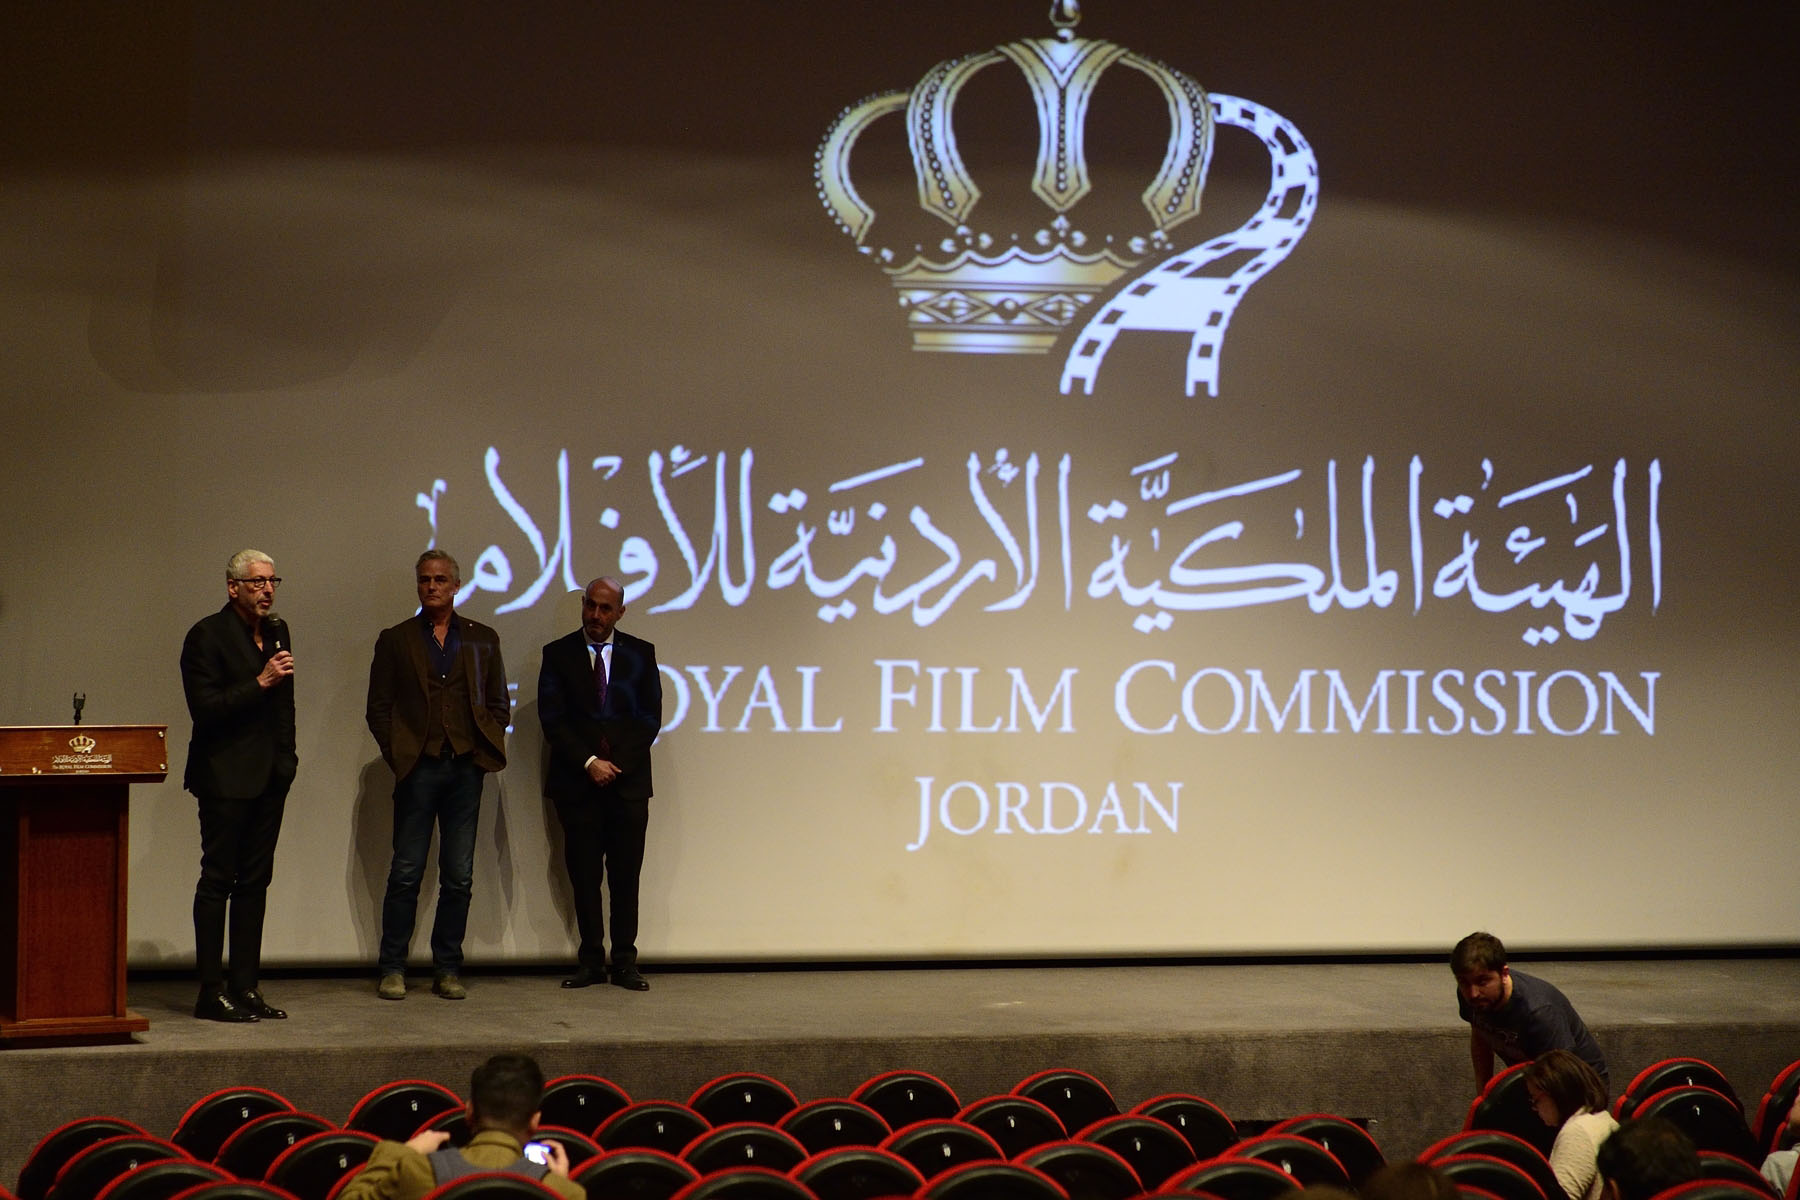 The screening was followed by an on-stage conversation with Paul Gross and producer Niv Fichman, two Canadian delegates.